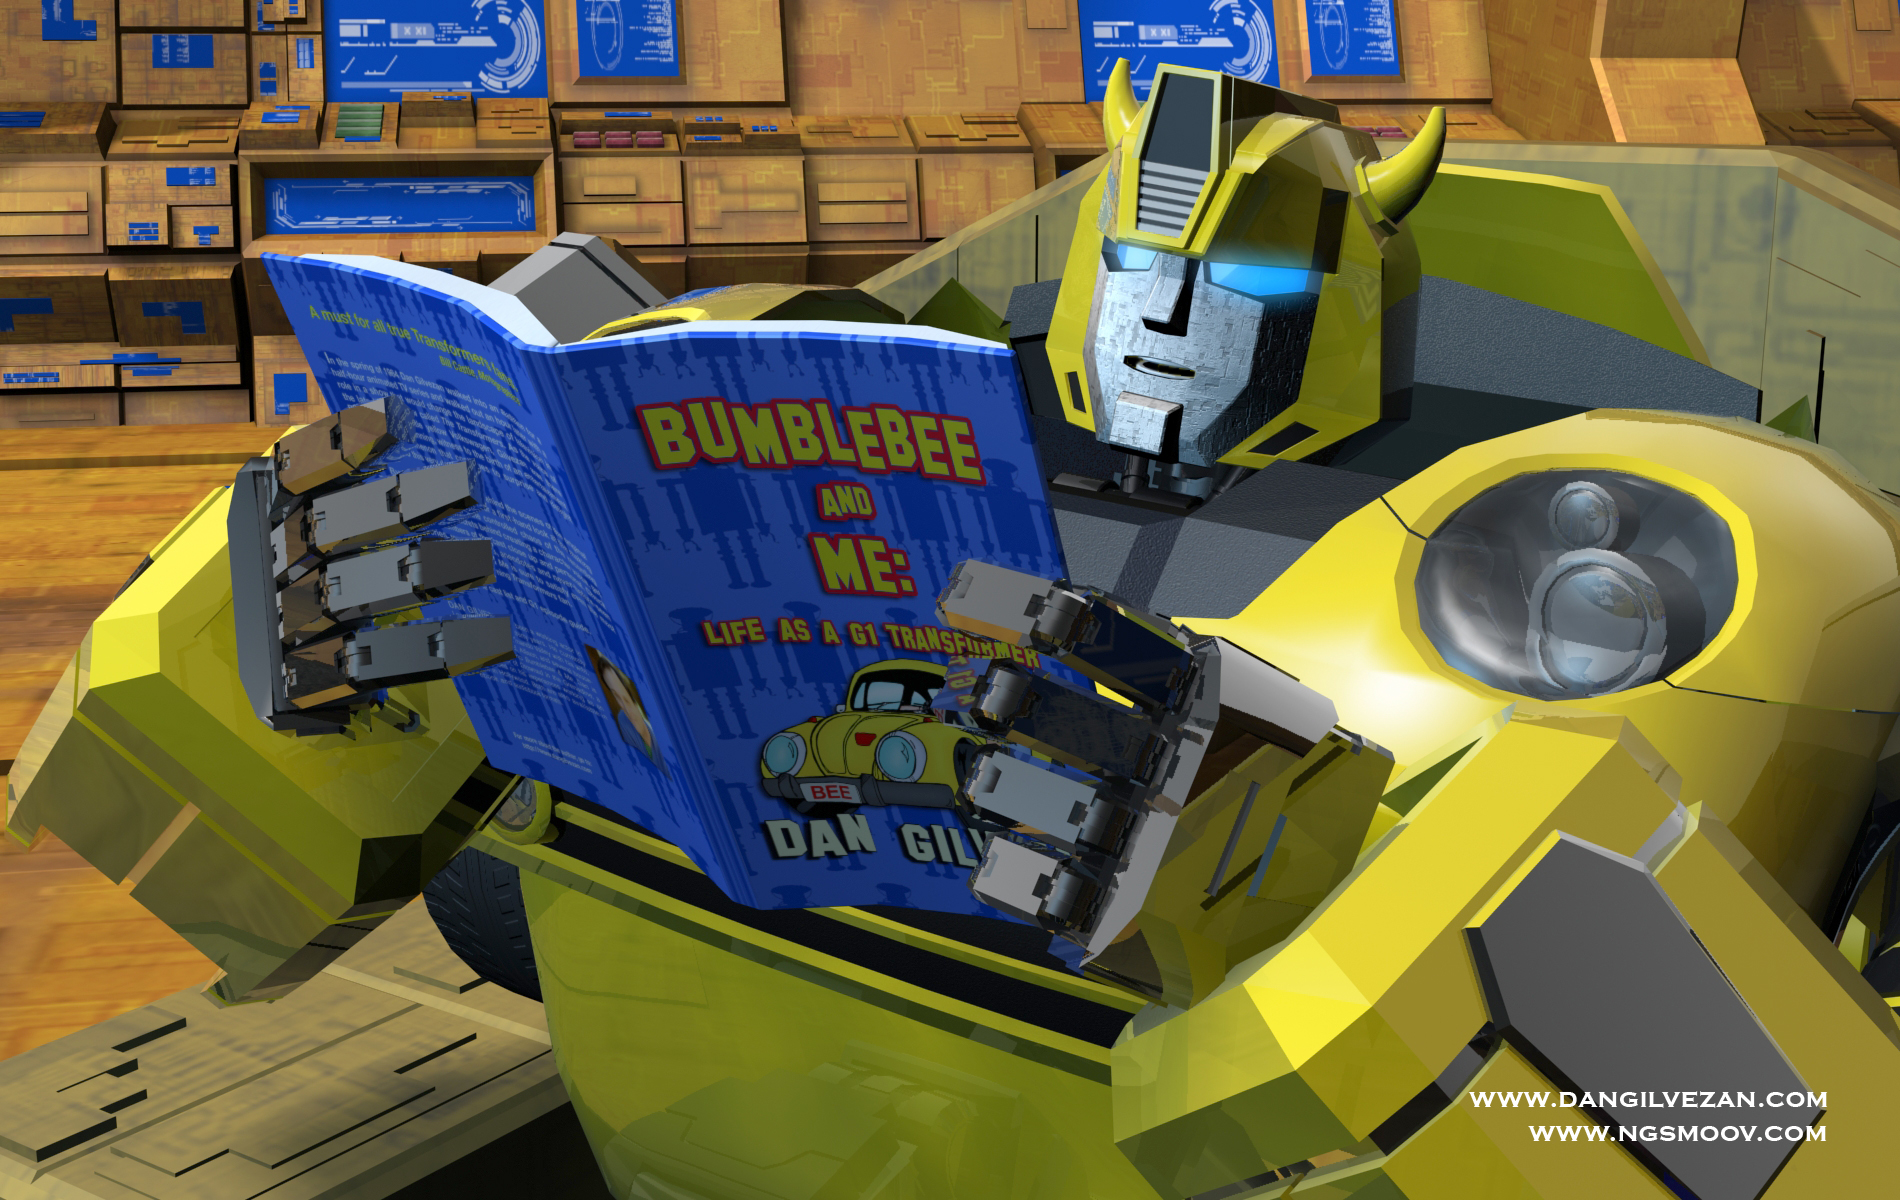 Bumblebee and Me featuring Dan Gilvezan by rando3d